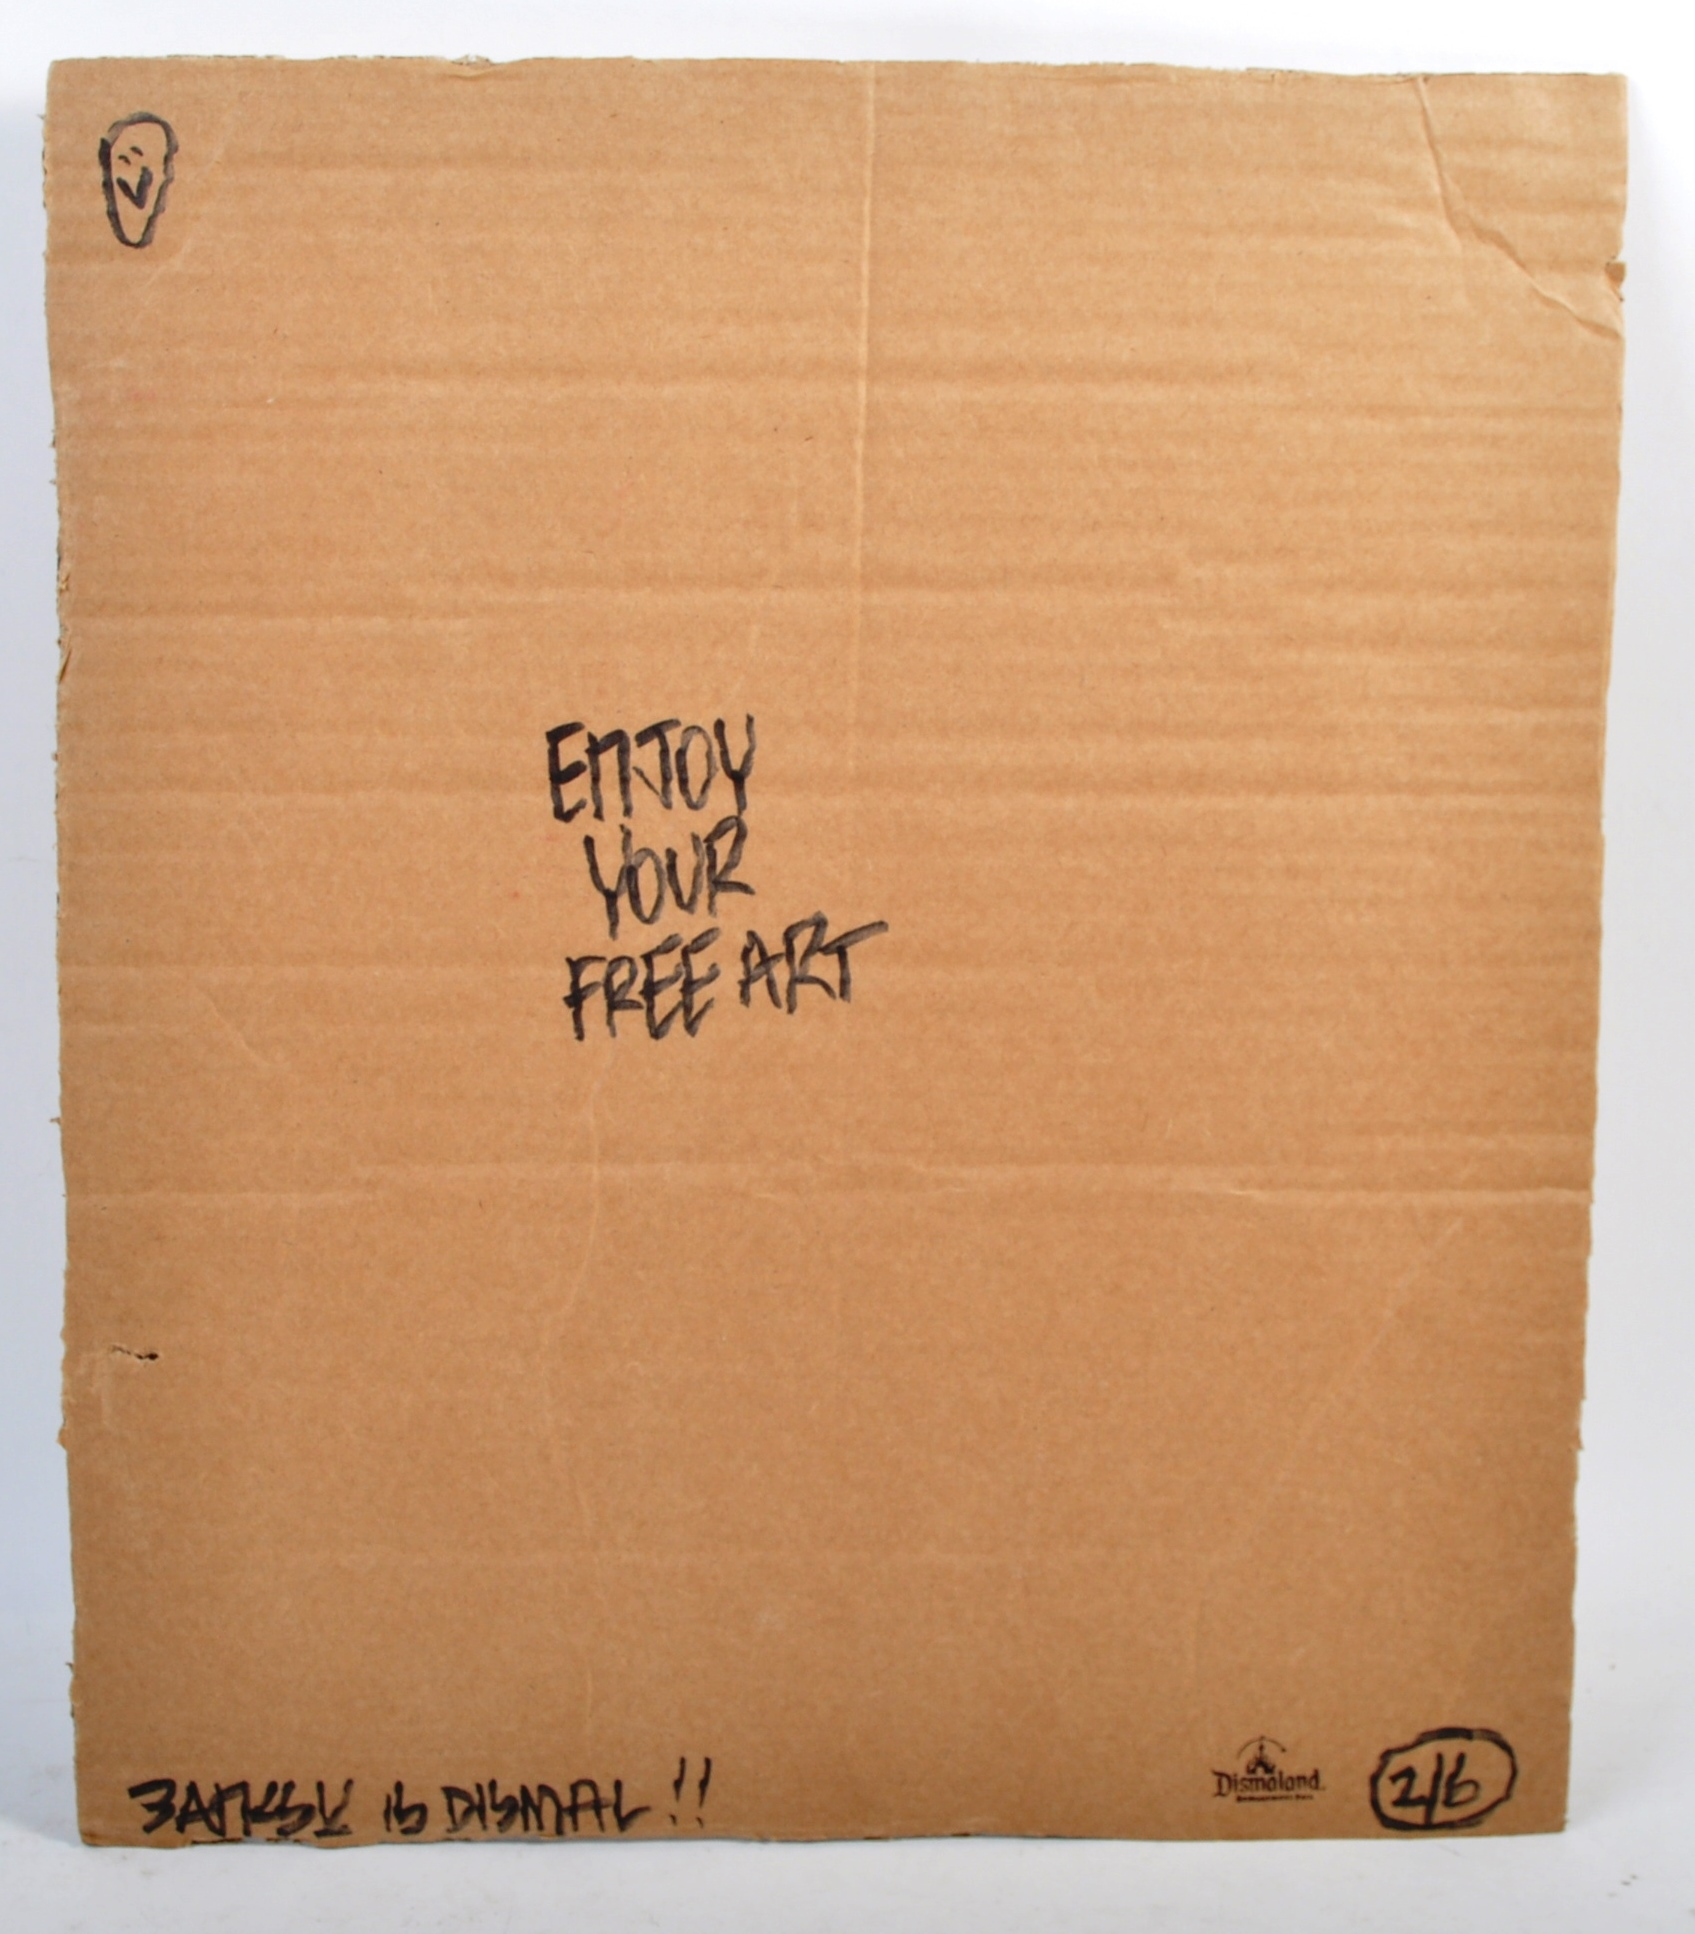 BANKSY - DISMALAND 2015 - WHAT? - Image 3 of 3